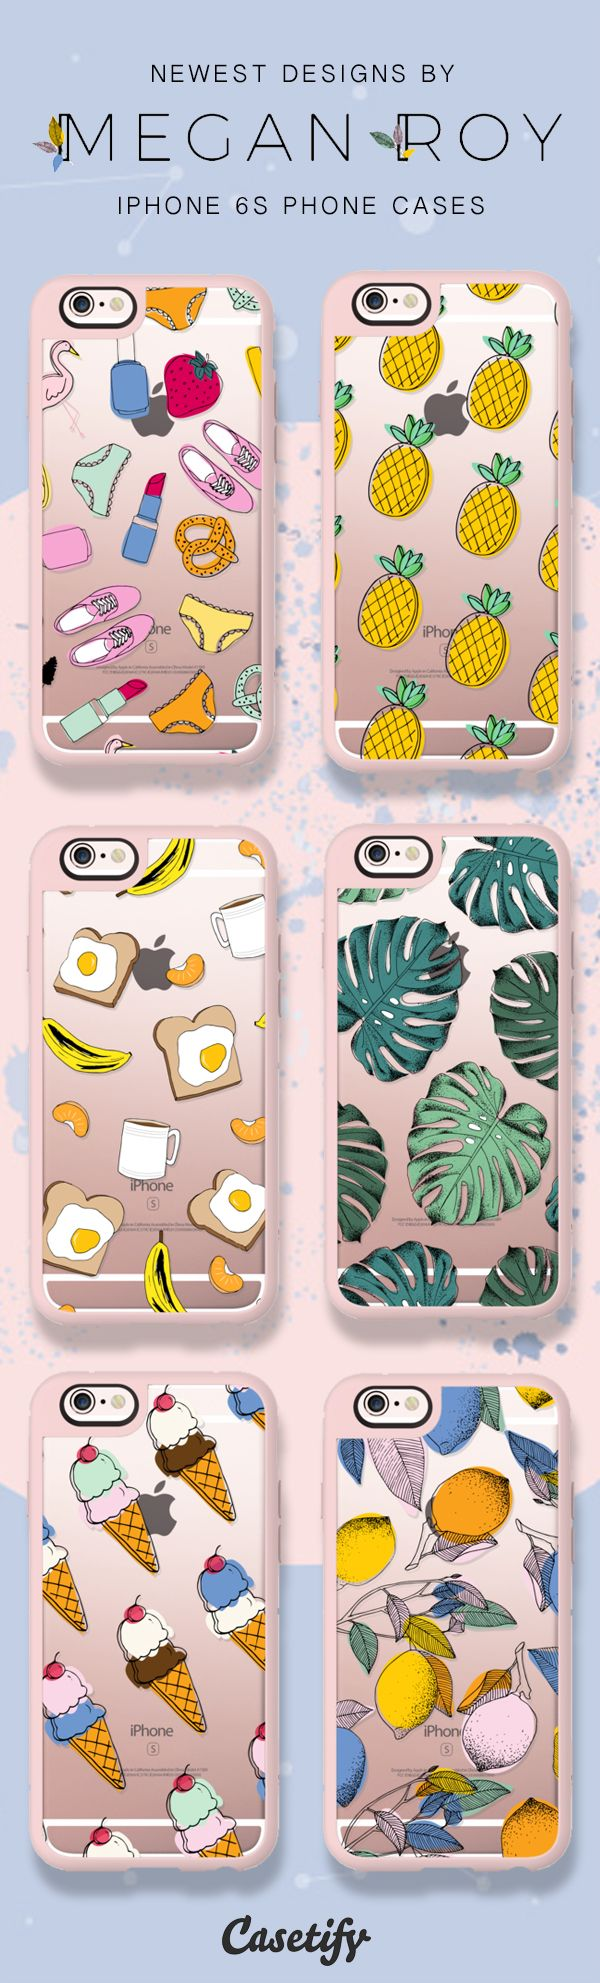 Shop these newest iPhone 6S designs by Megan Roy here >>> https://www.casetify.com/MeganRoy1/collection? (also available for iPhone 7 soon!)